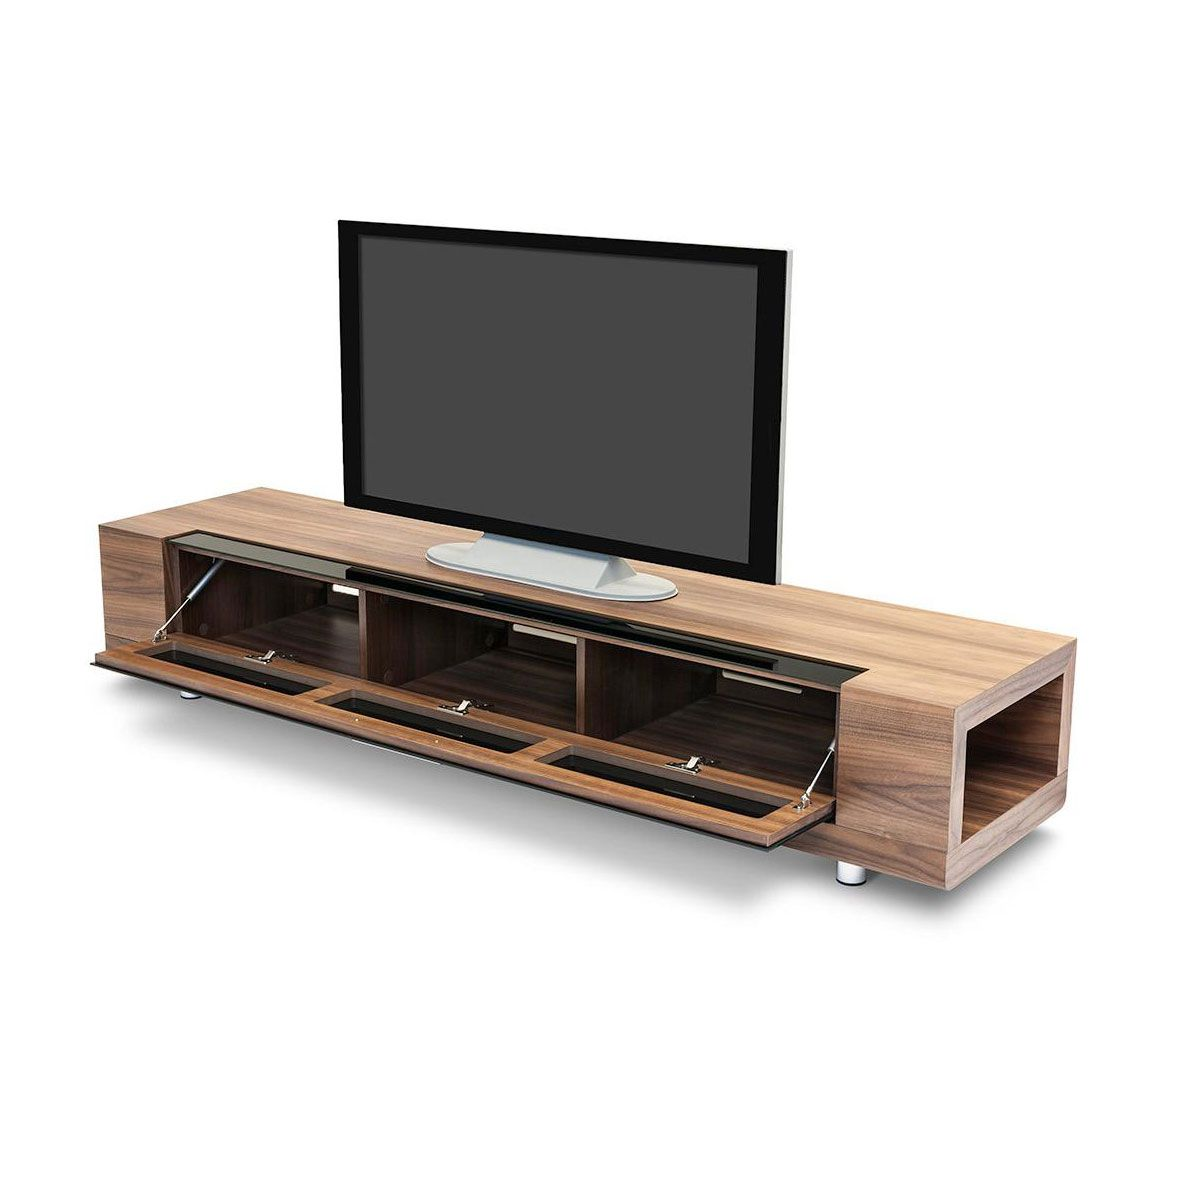 The Tube Modern TV Stand  dotandbo.com  Furniture projects  Pinterest  장식장 ...